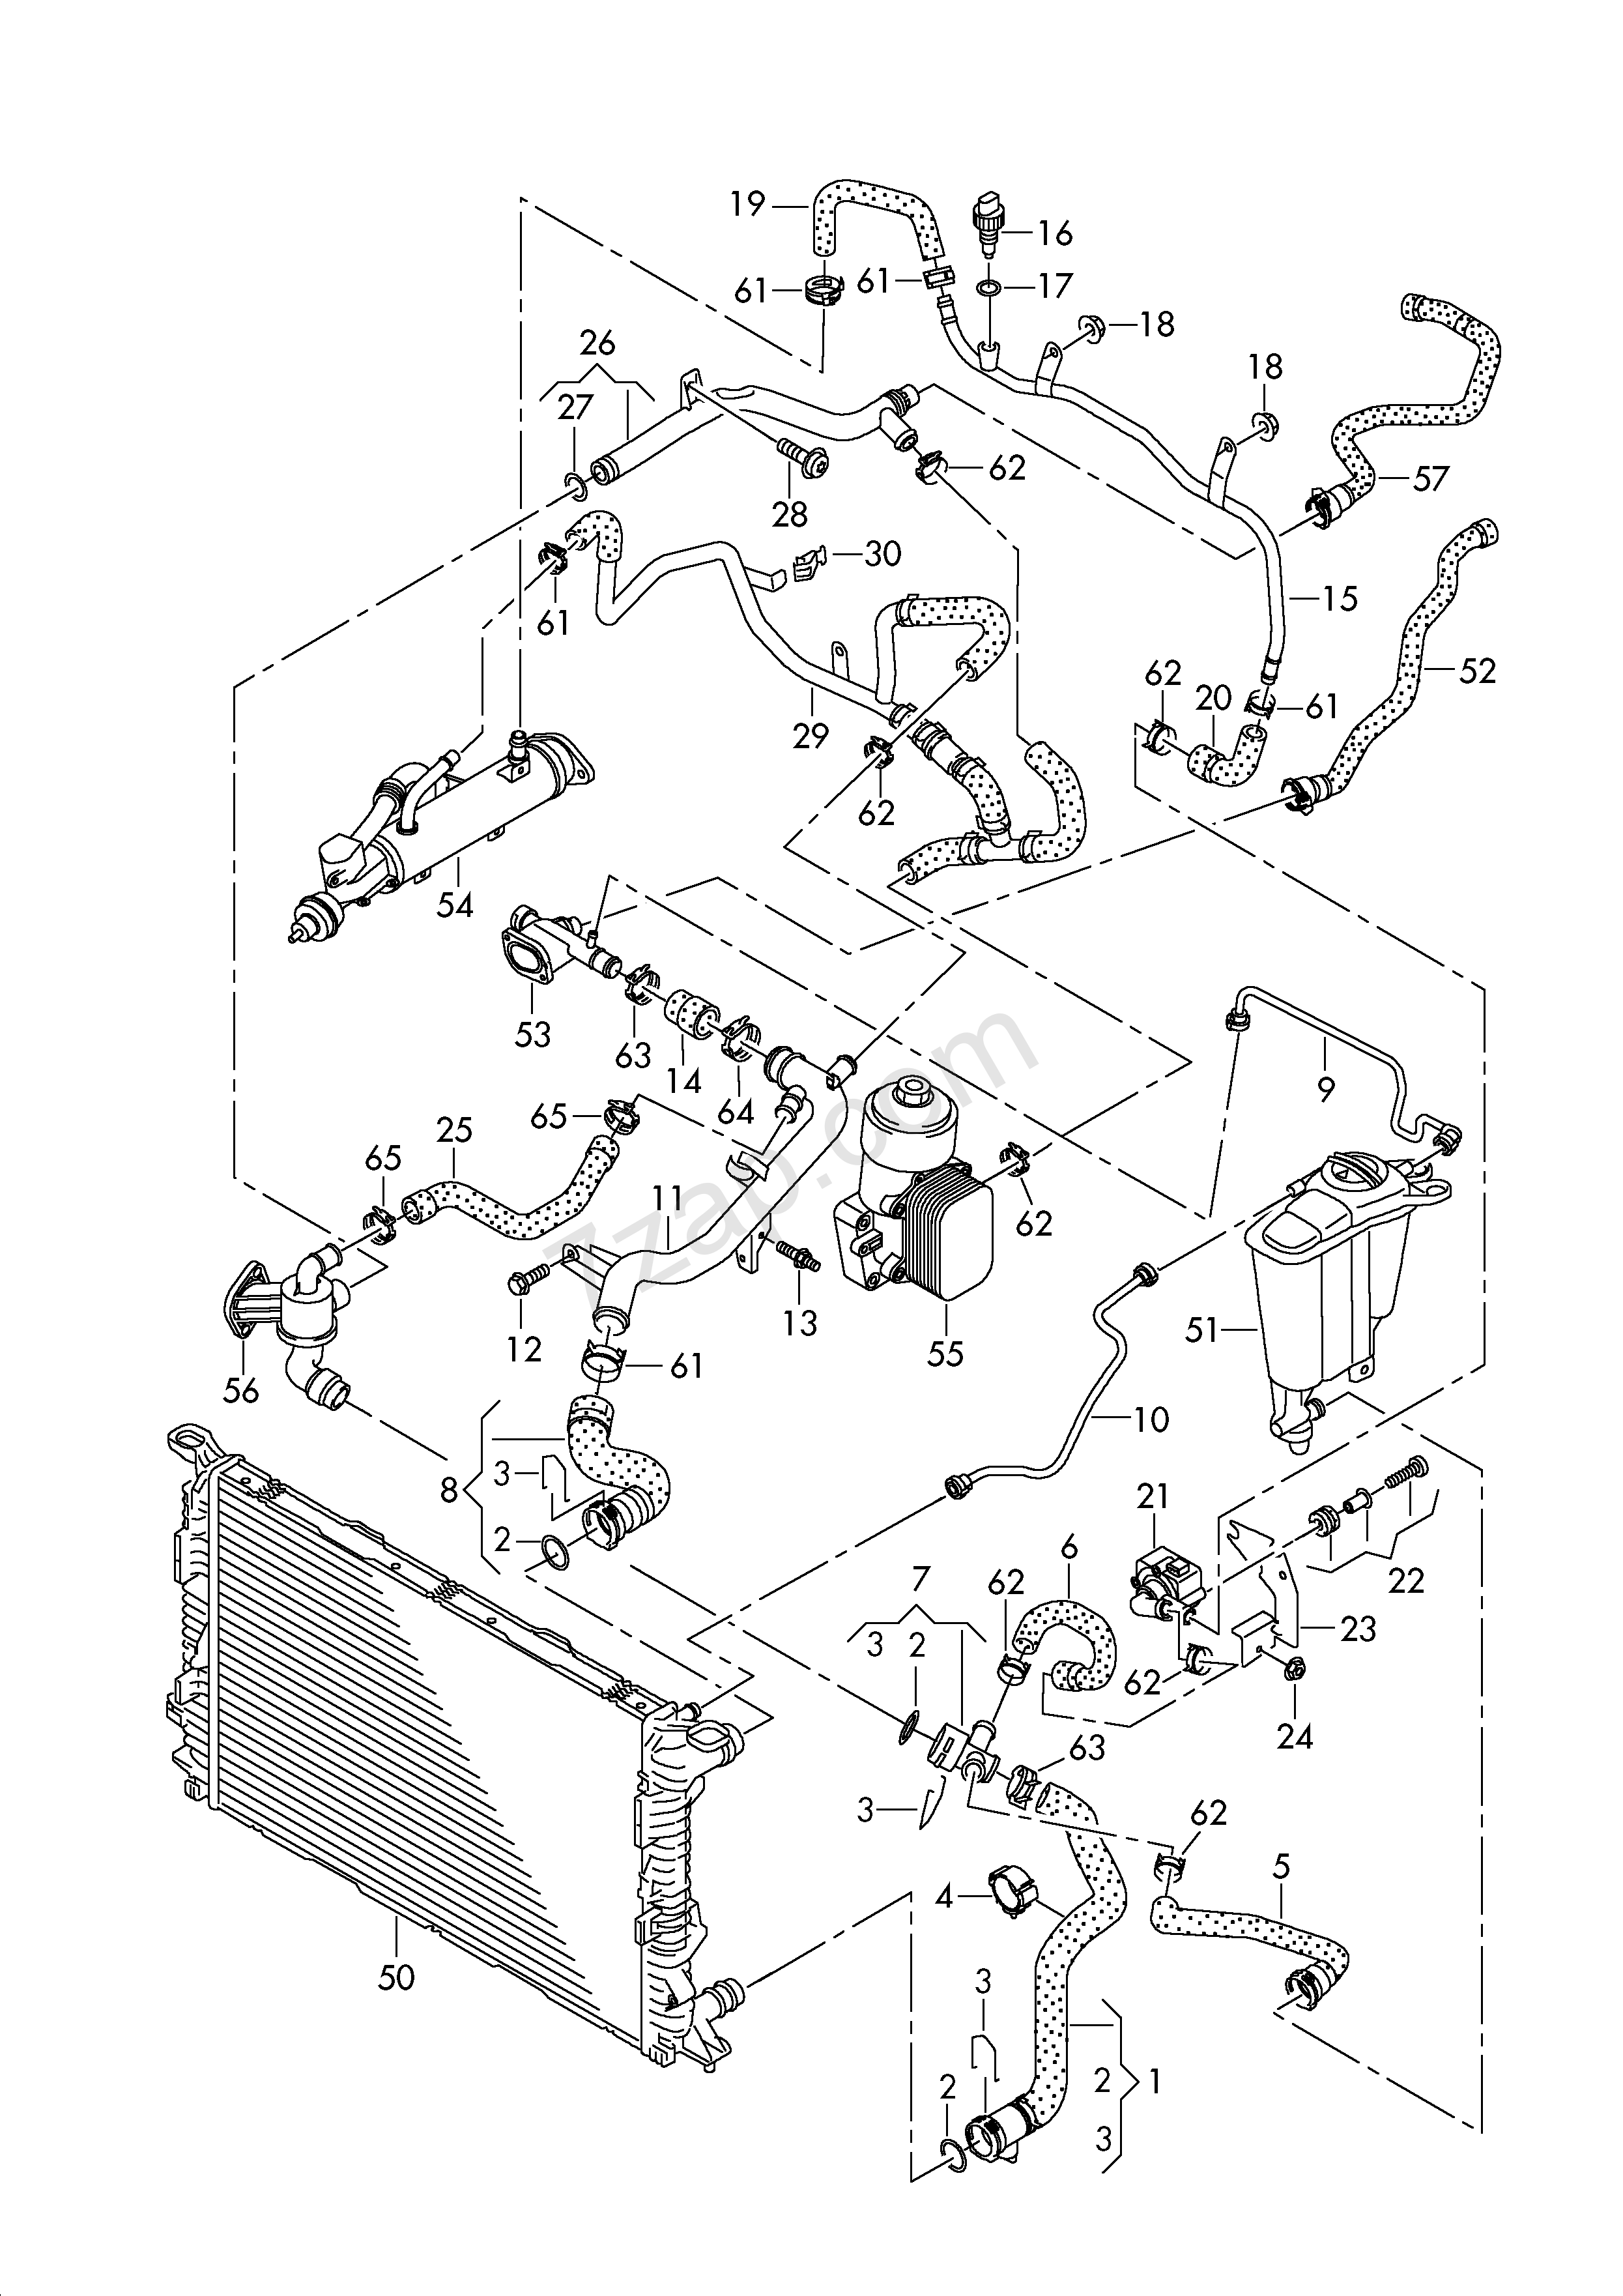 Wiring Database 2020  29 Audi A4 Cooling System Diagram